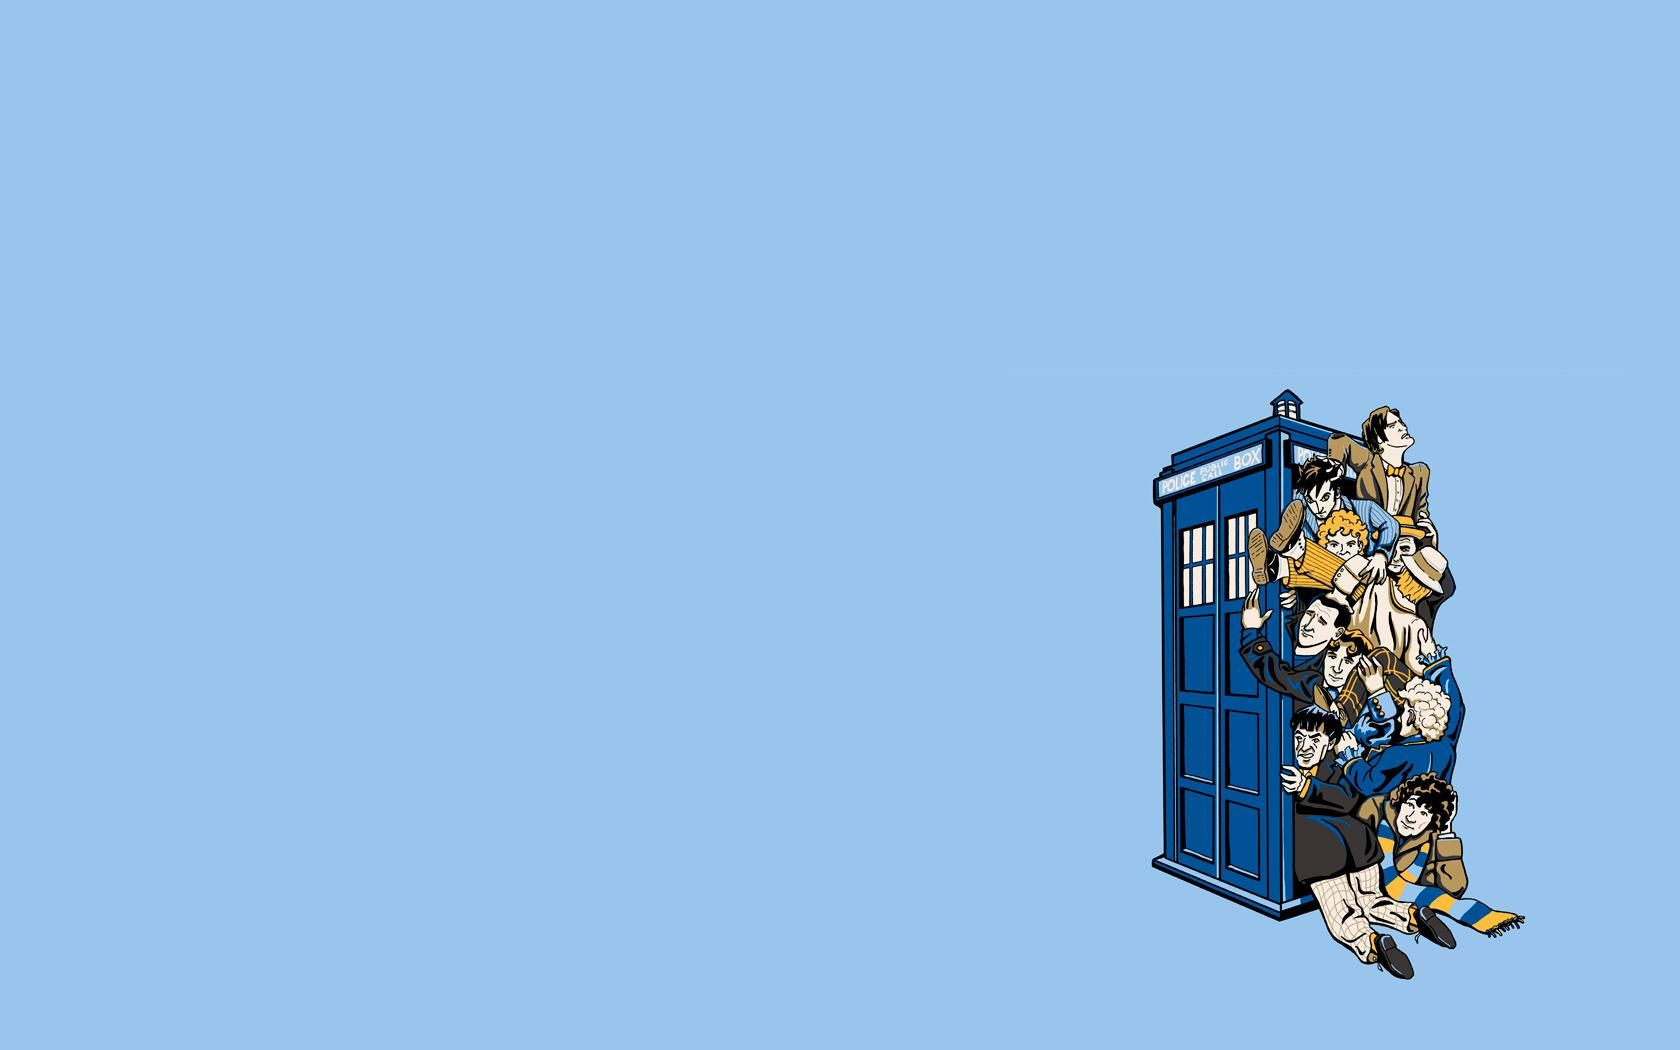 High Definition Mobile Phone And Desktop Wallpapers Doctor Who Wallpaper Tardis Wallpaper Tardis